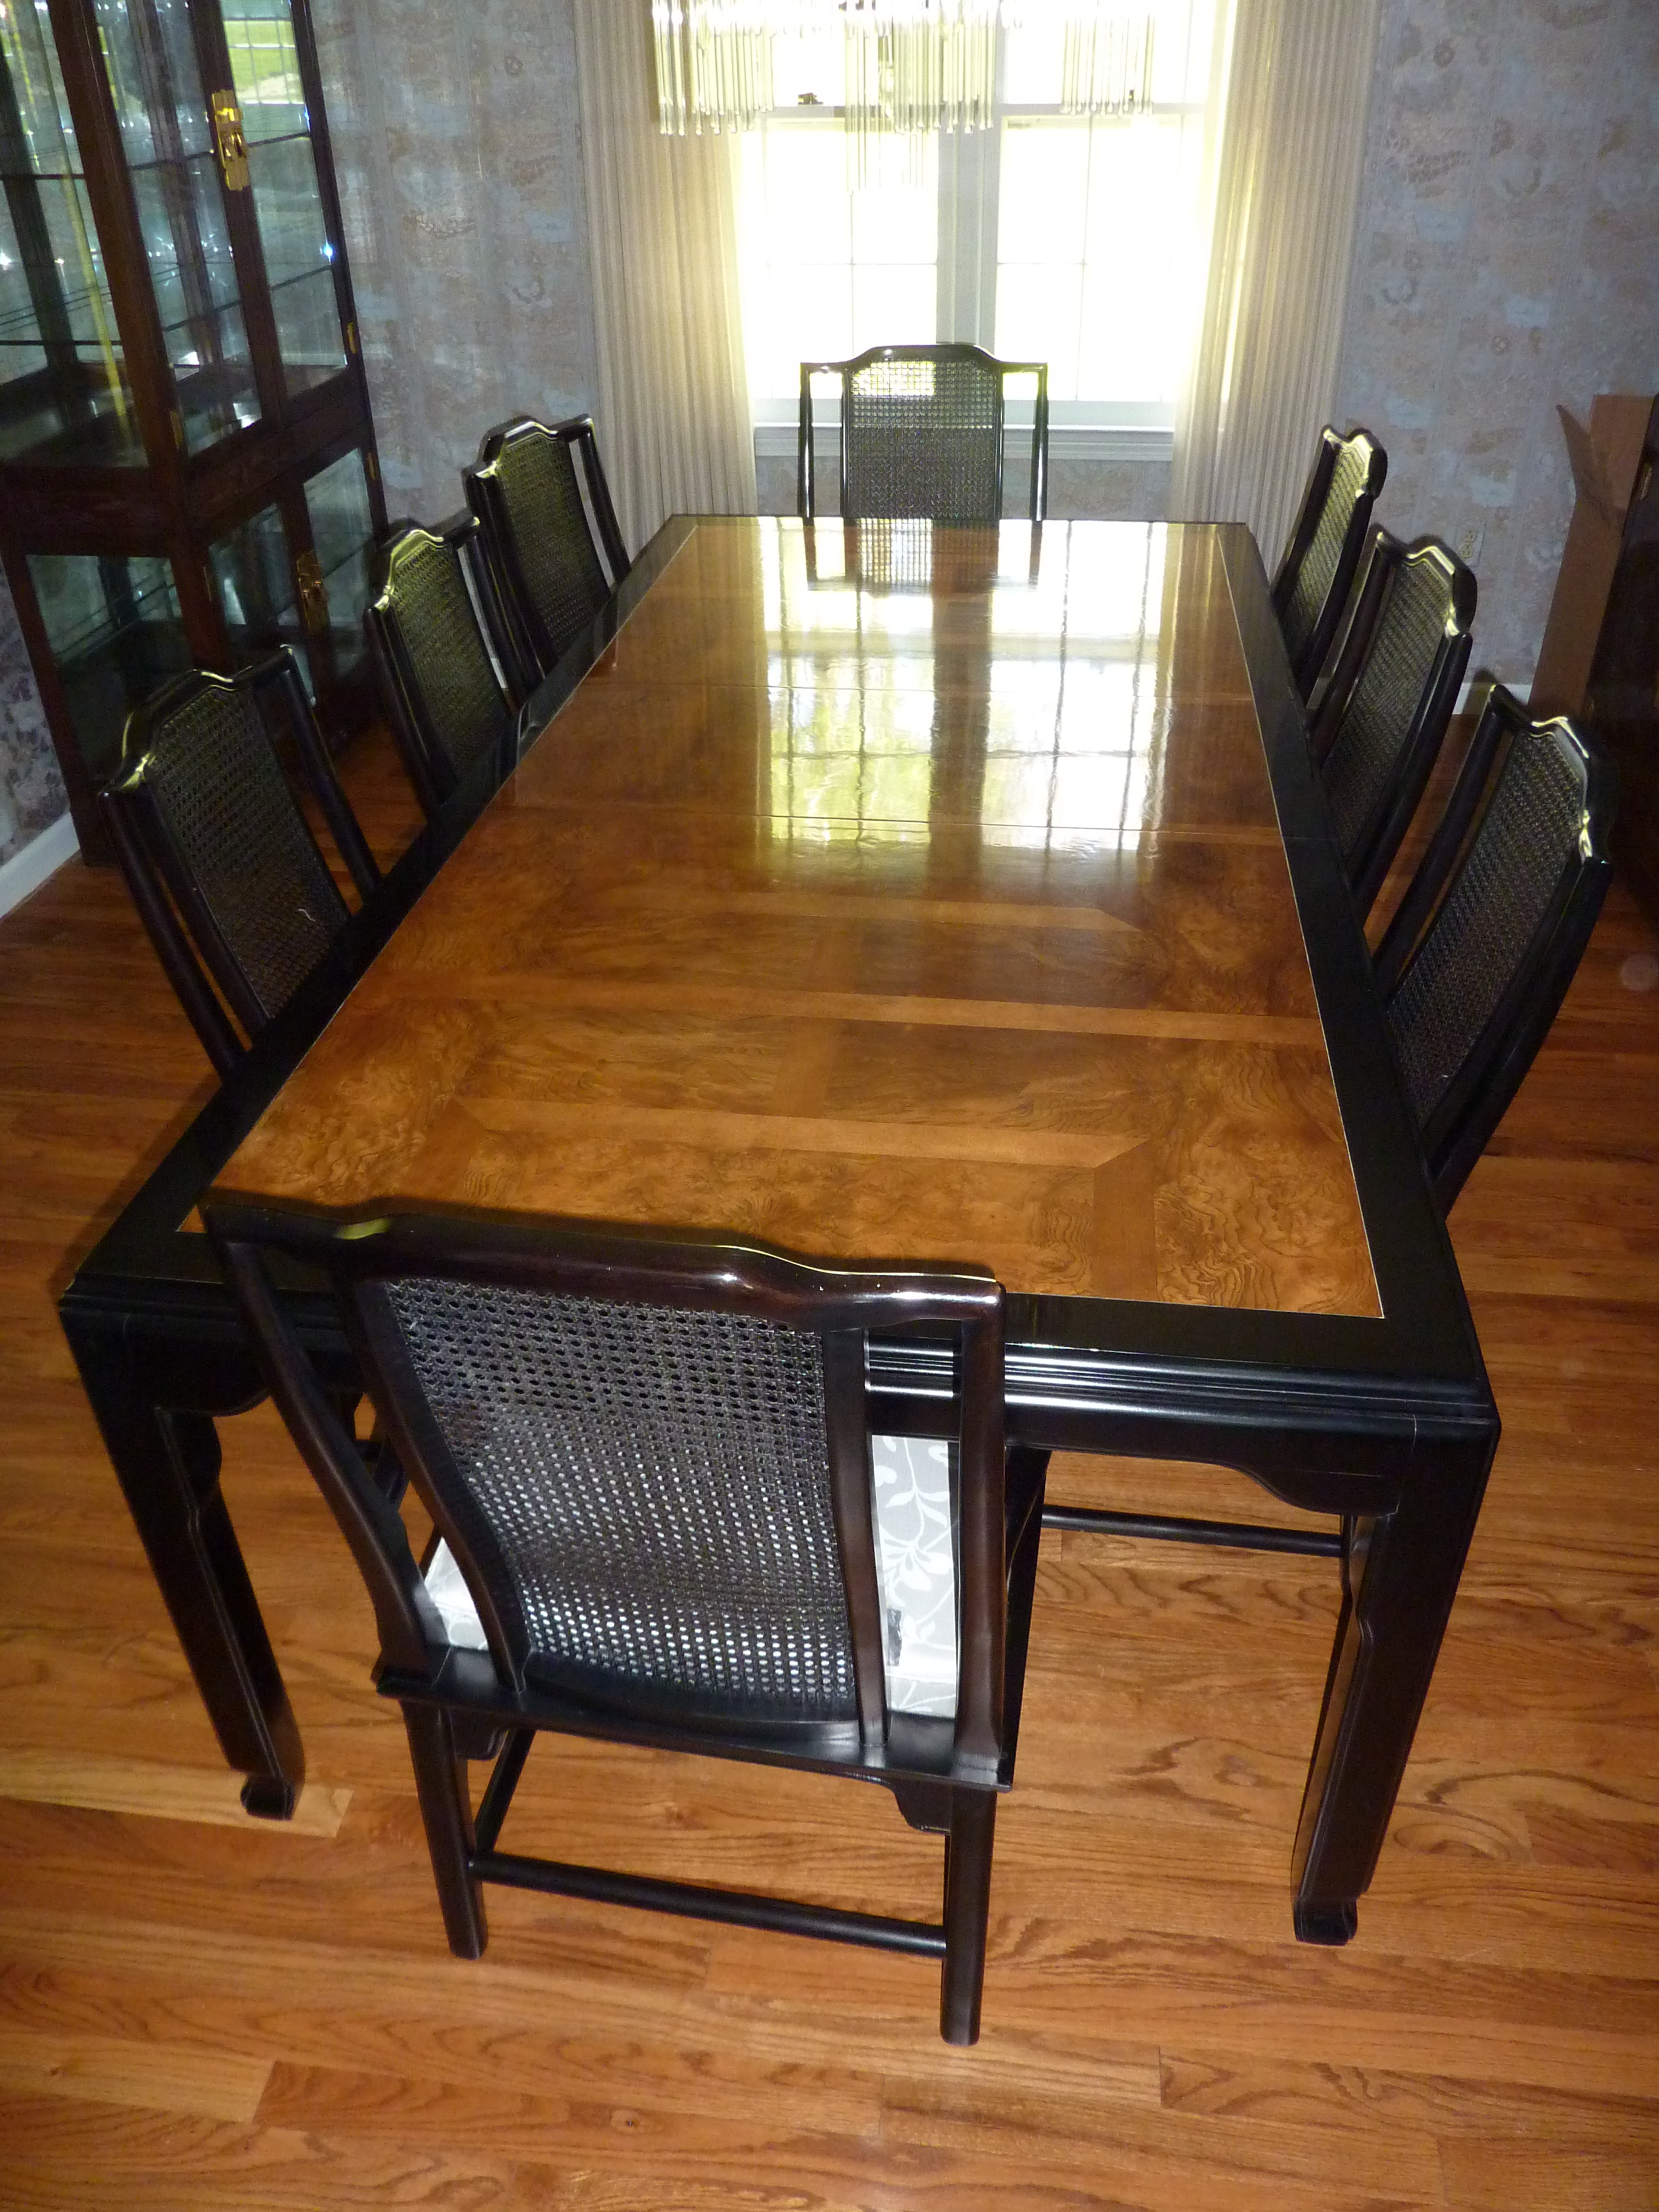 Century Black Lacquer U0026 Burled Wood Dining Set   Image 2 ... Part 54